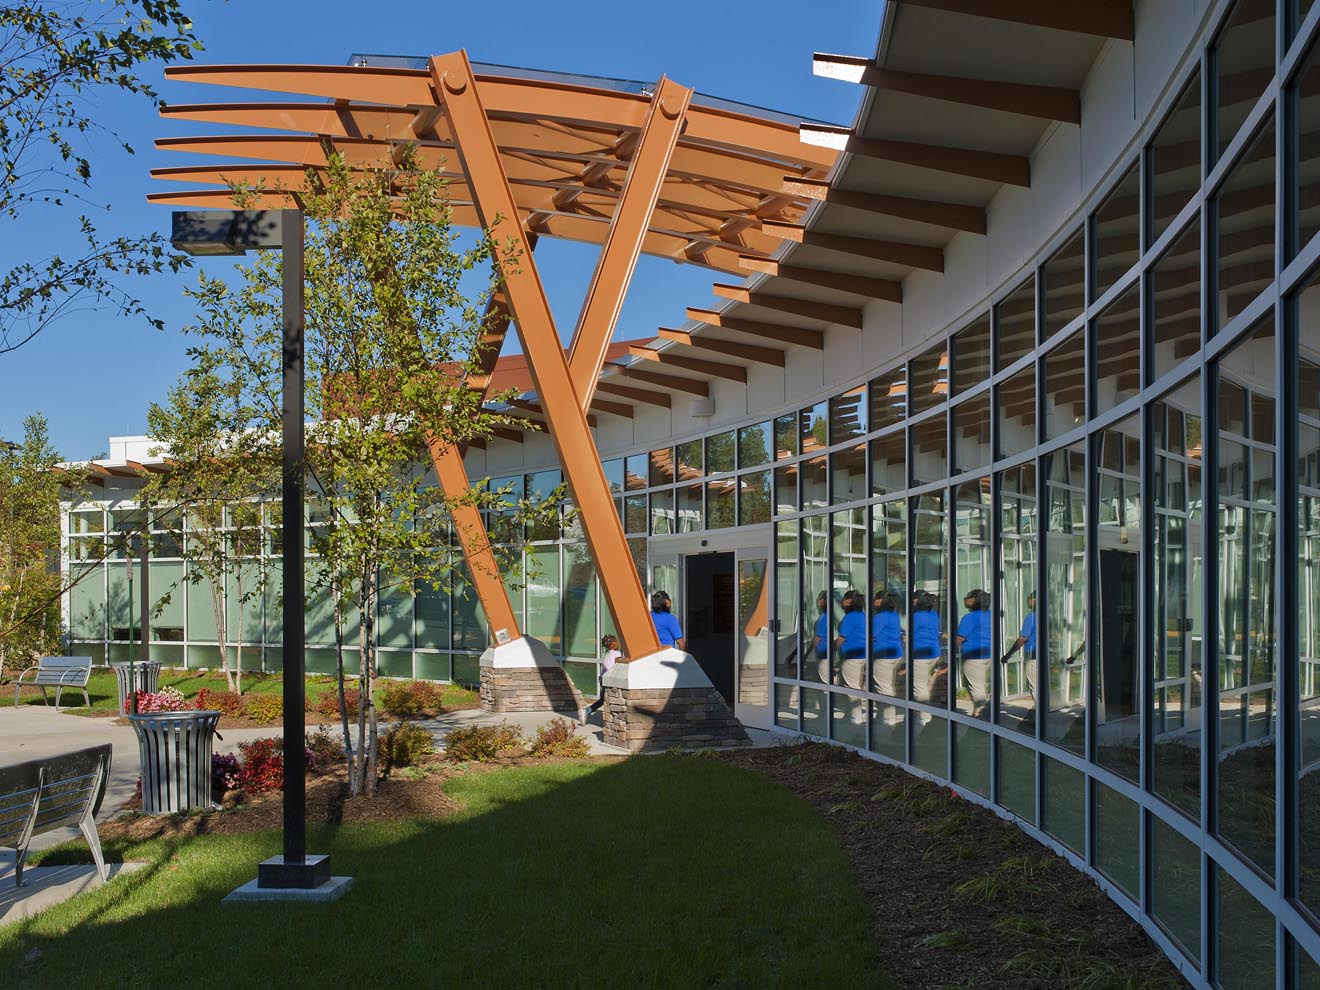 person entering library entrance under canopy during daytime